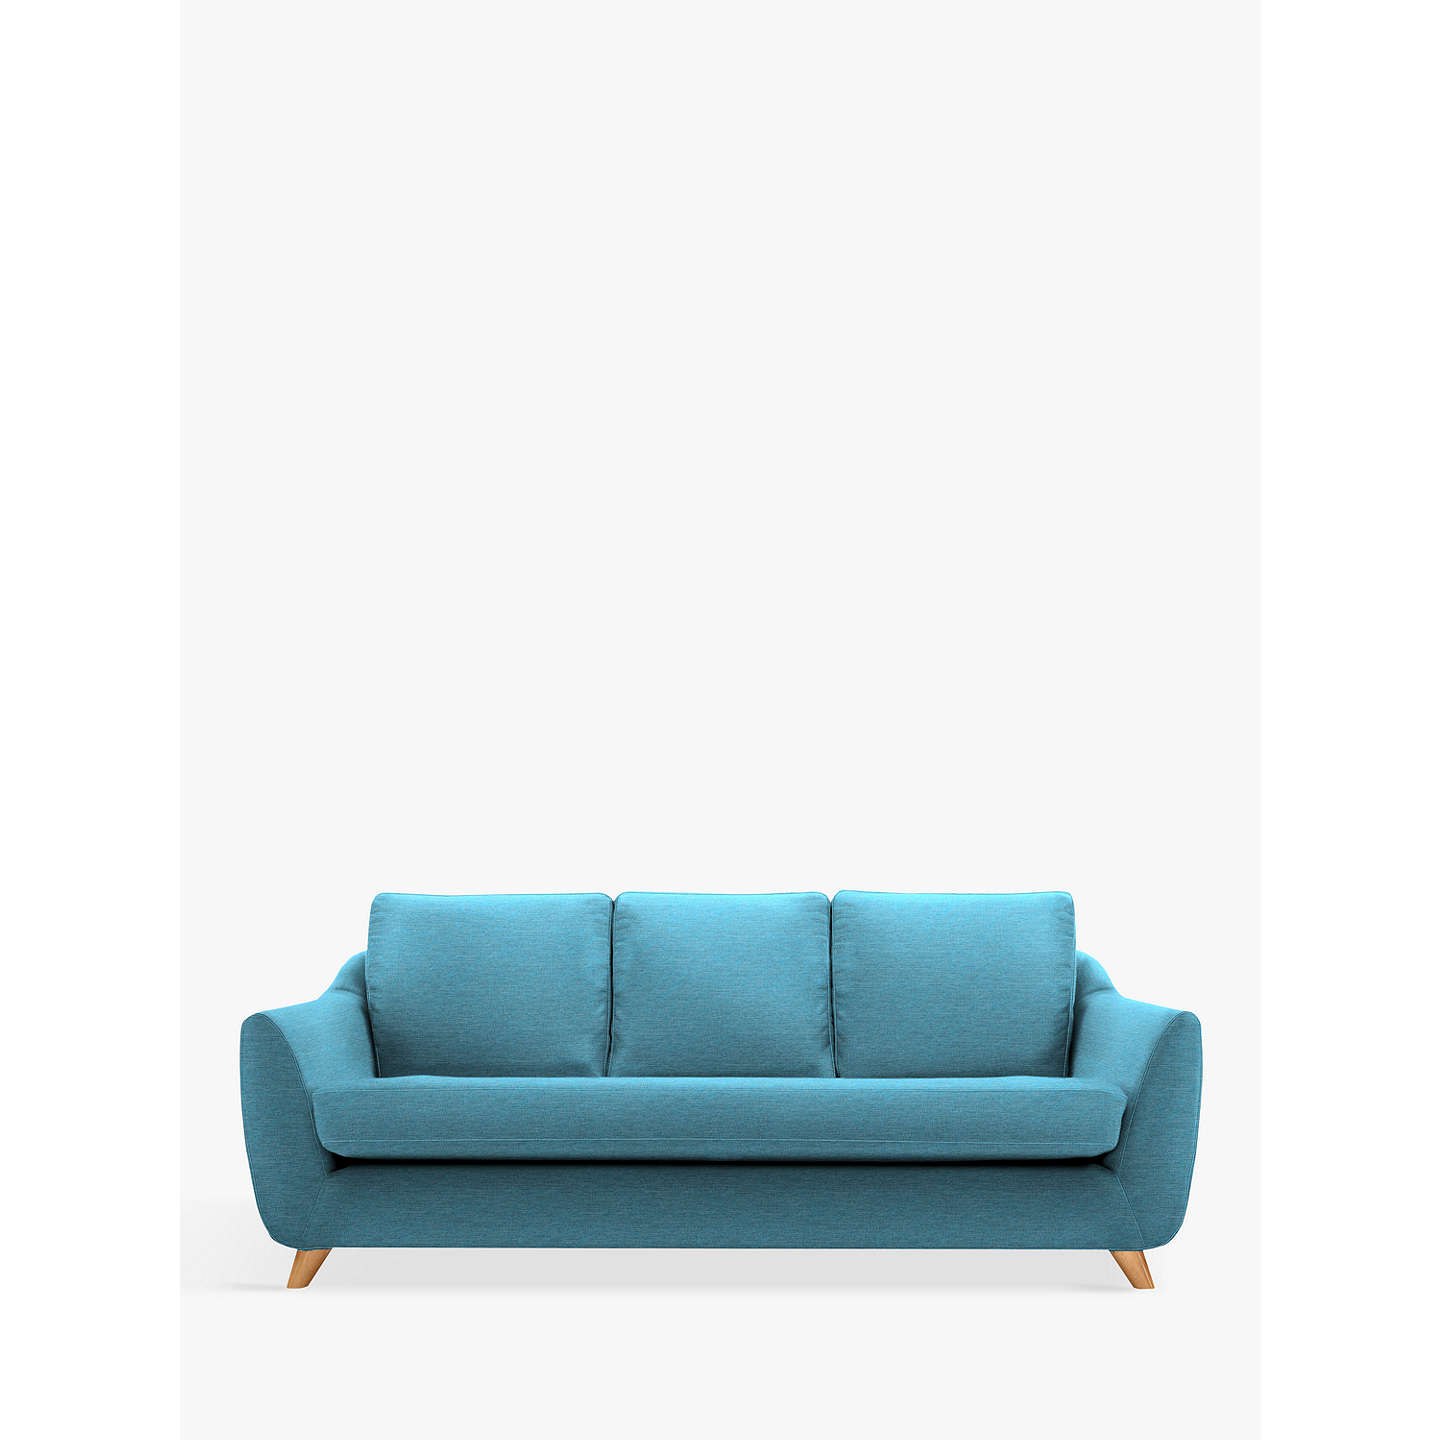 G Plan Vintage The Sixty Seven Large 3 Seater Sofa Fleck Blue Online At Johnlewis